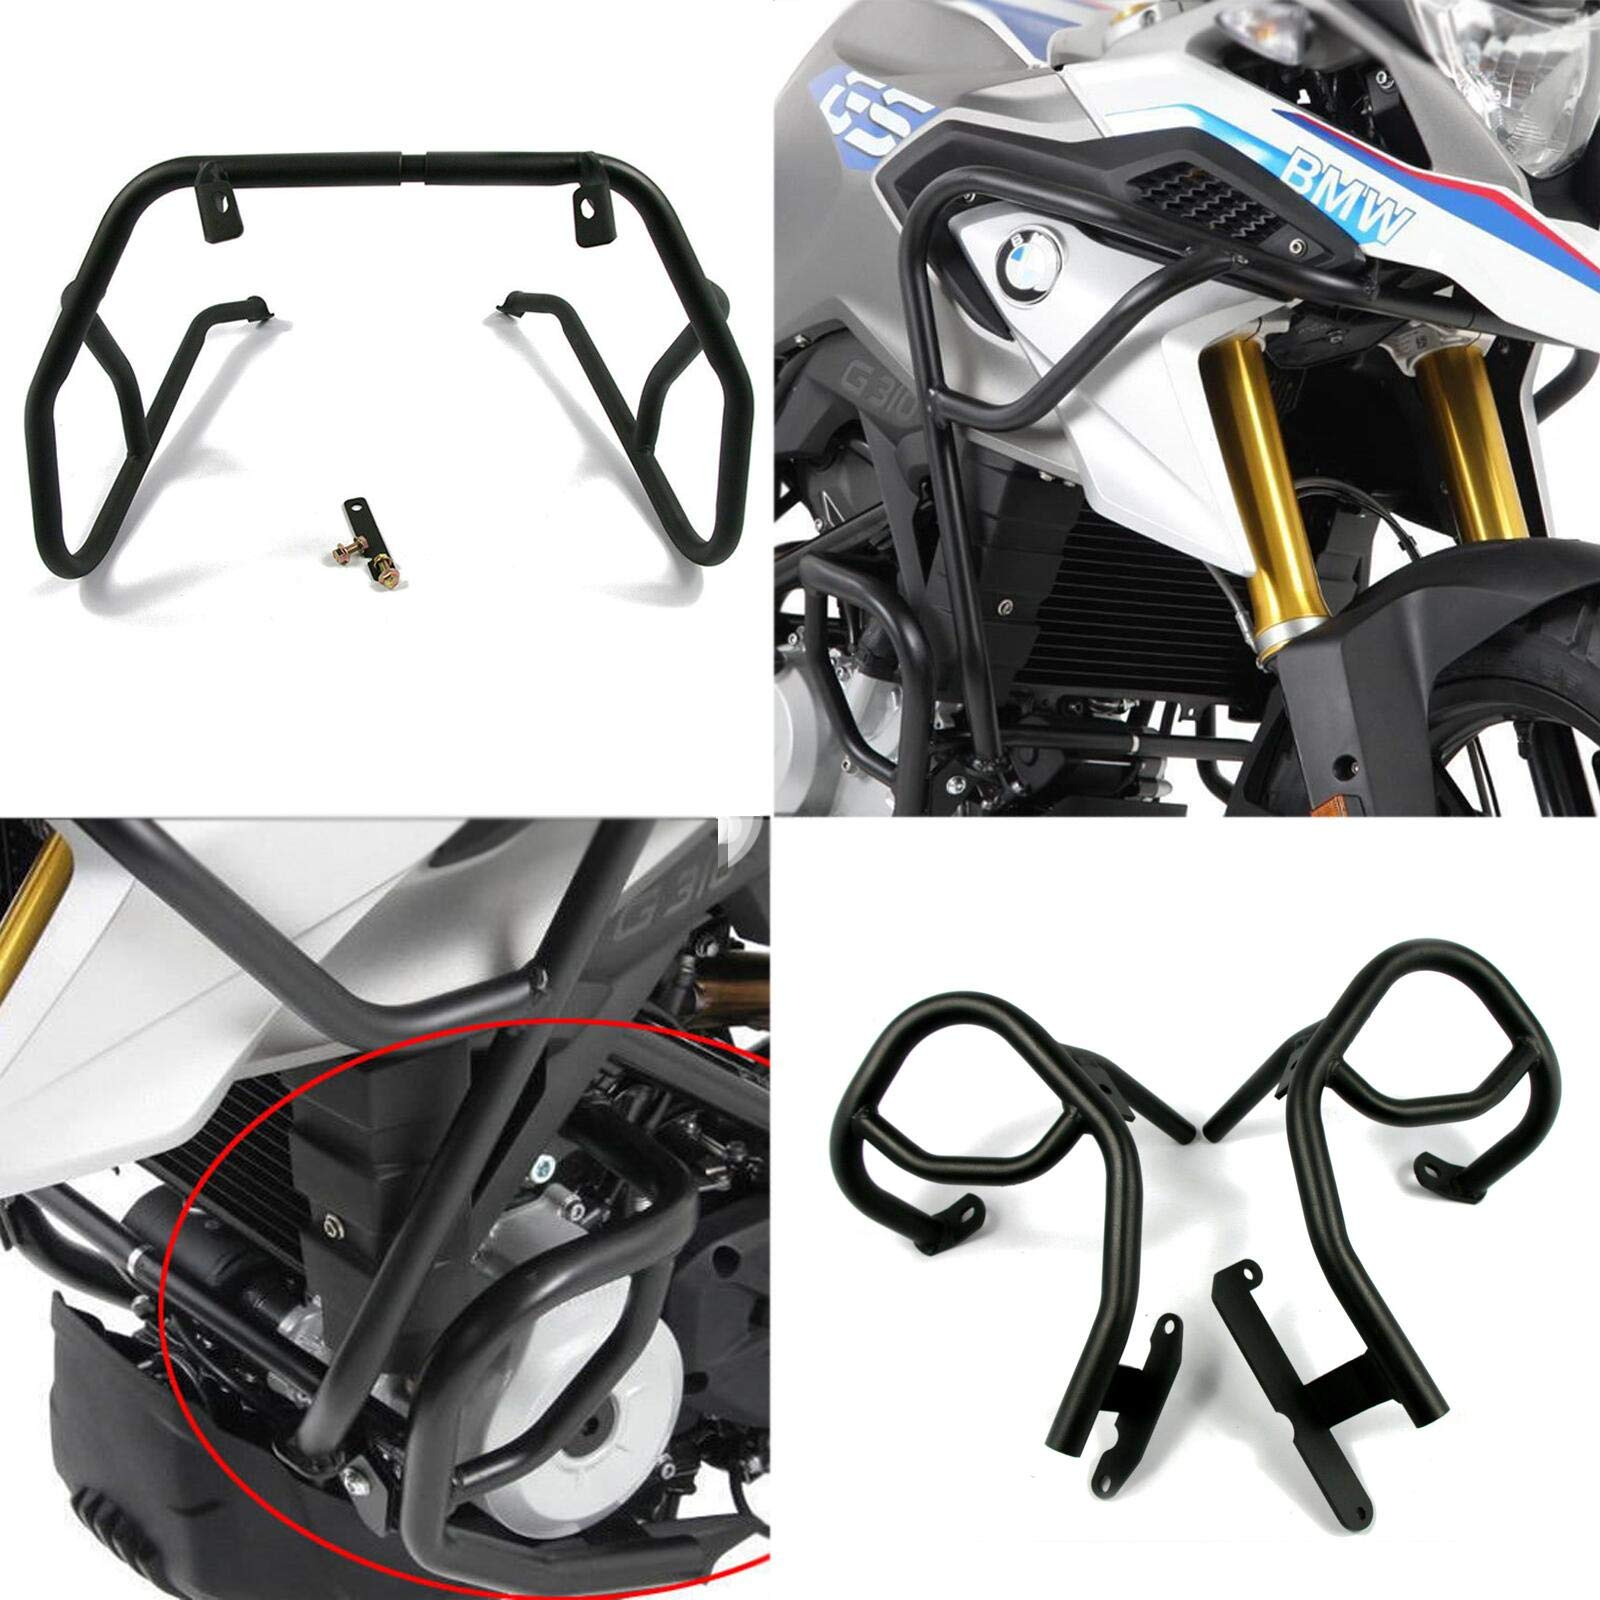 Engine Guard Crash Bar Tank Guard Protector For BMW G310GS (Upper+Lower)